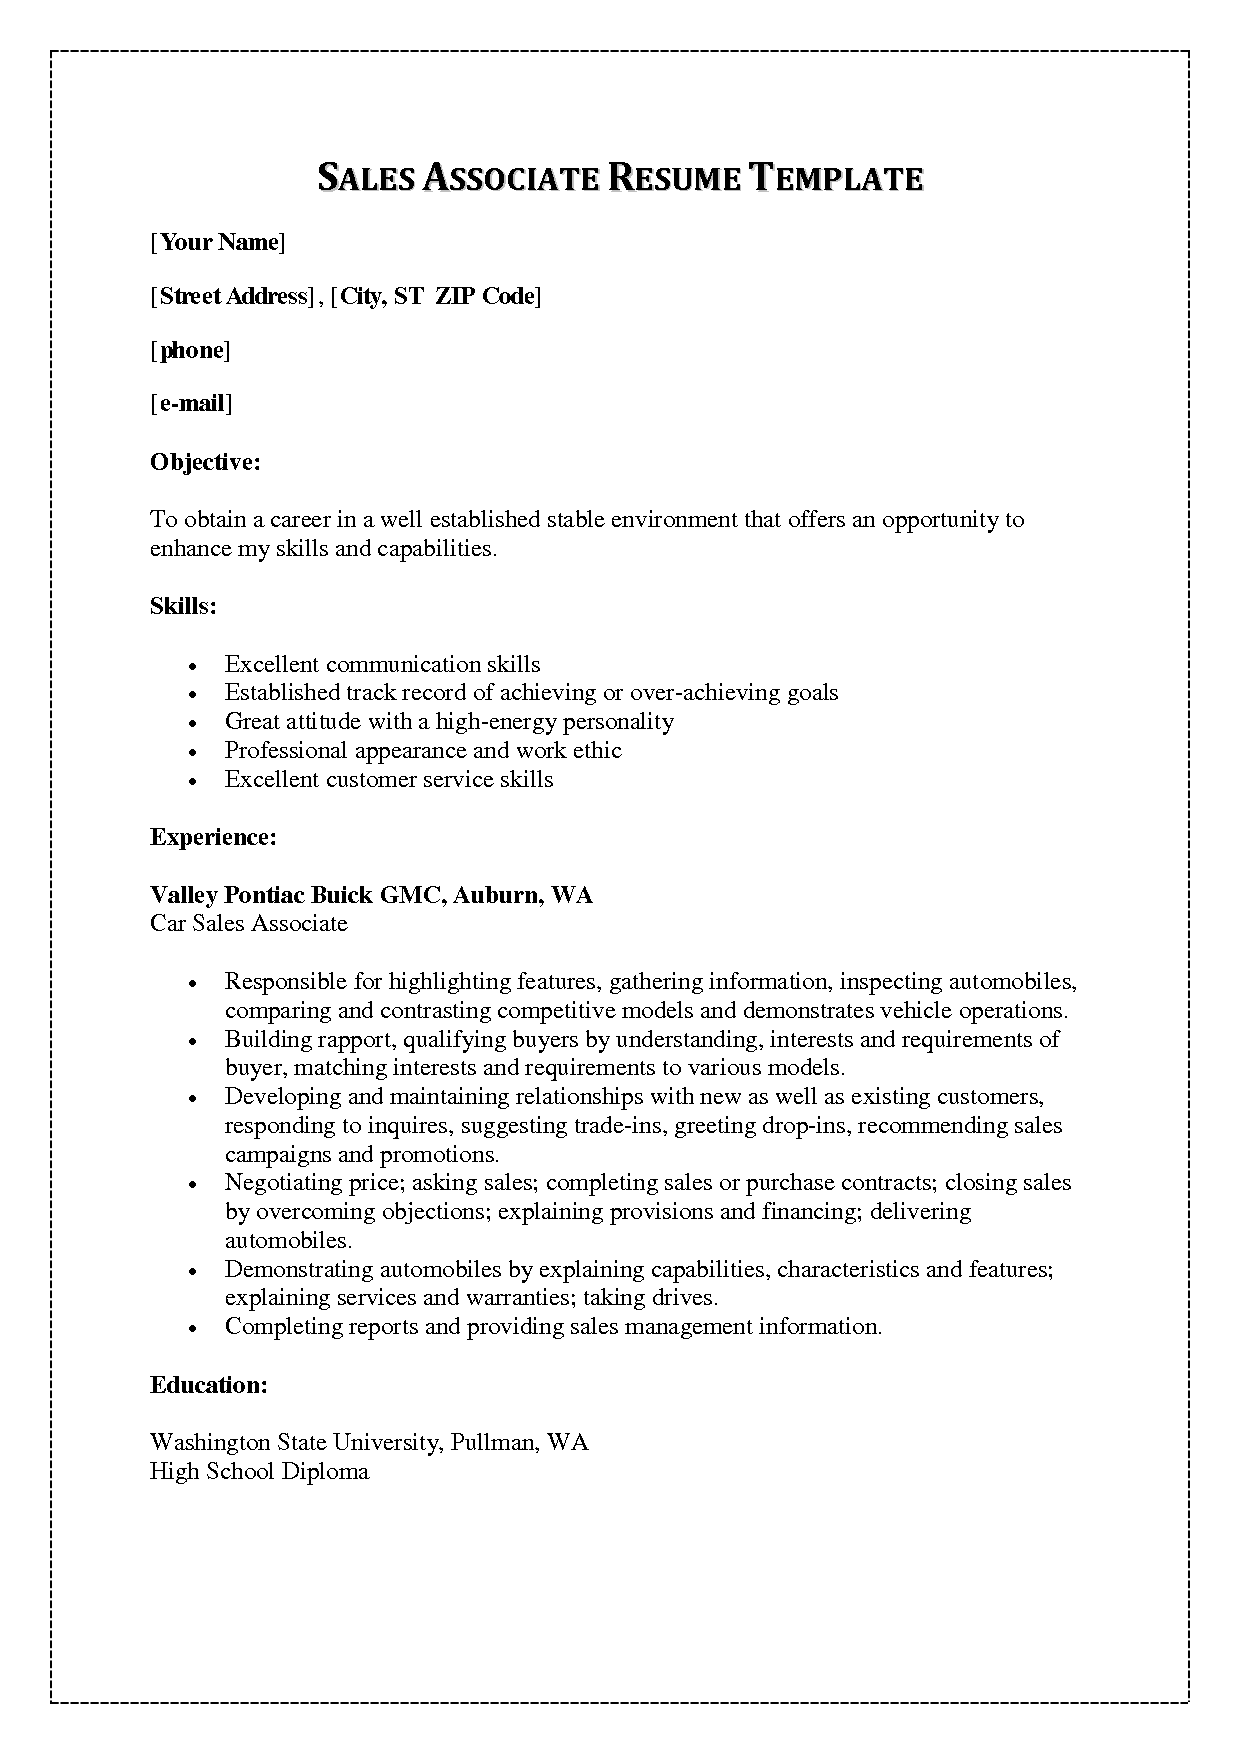 sale associate duties resume